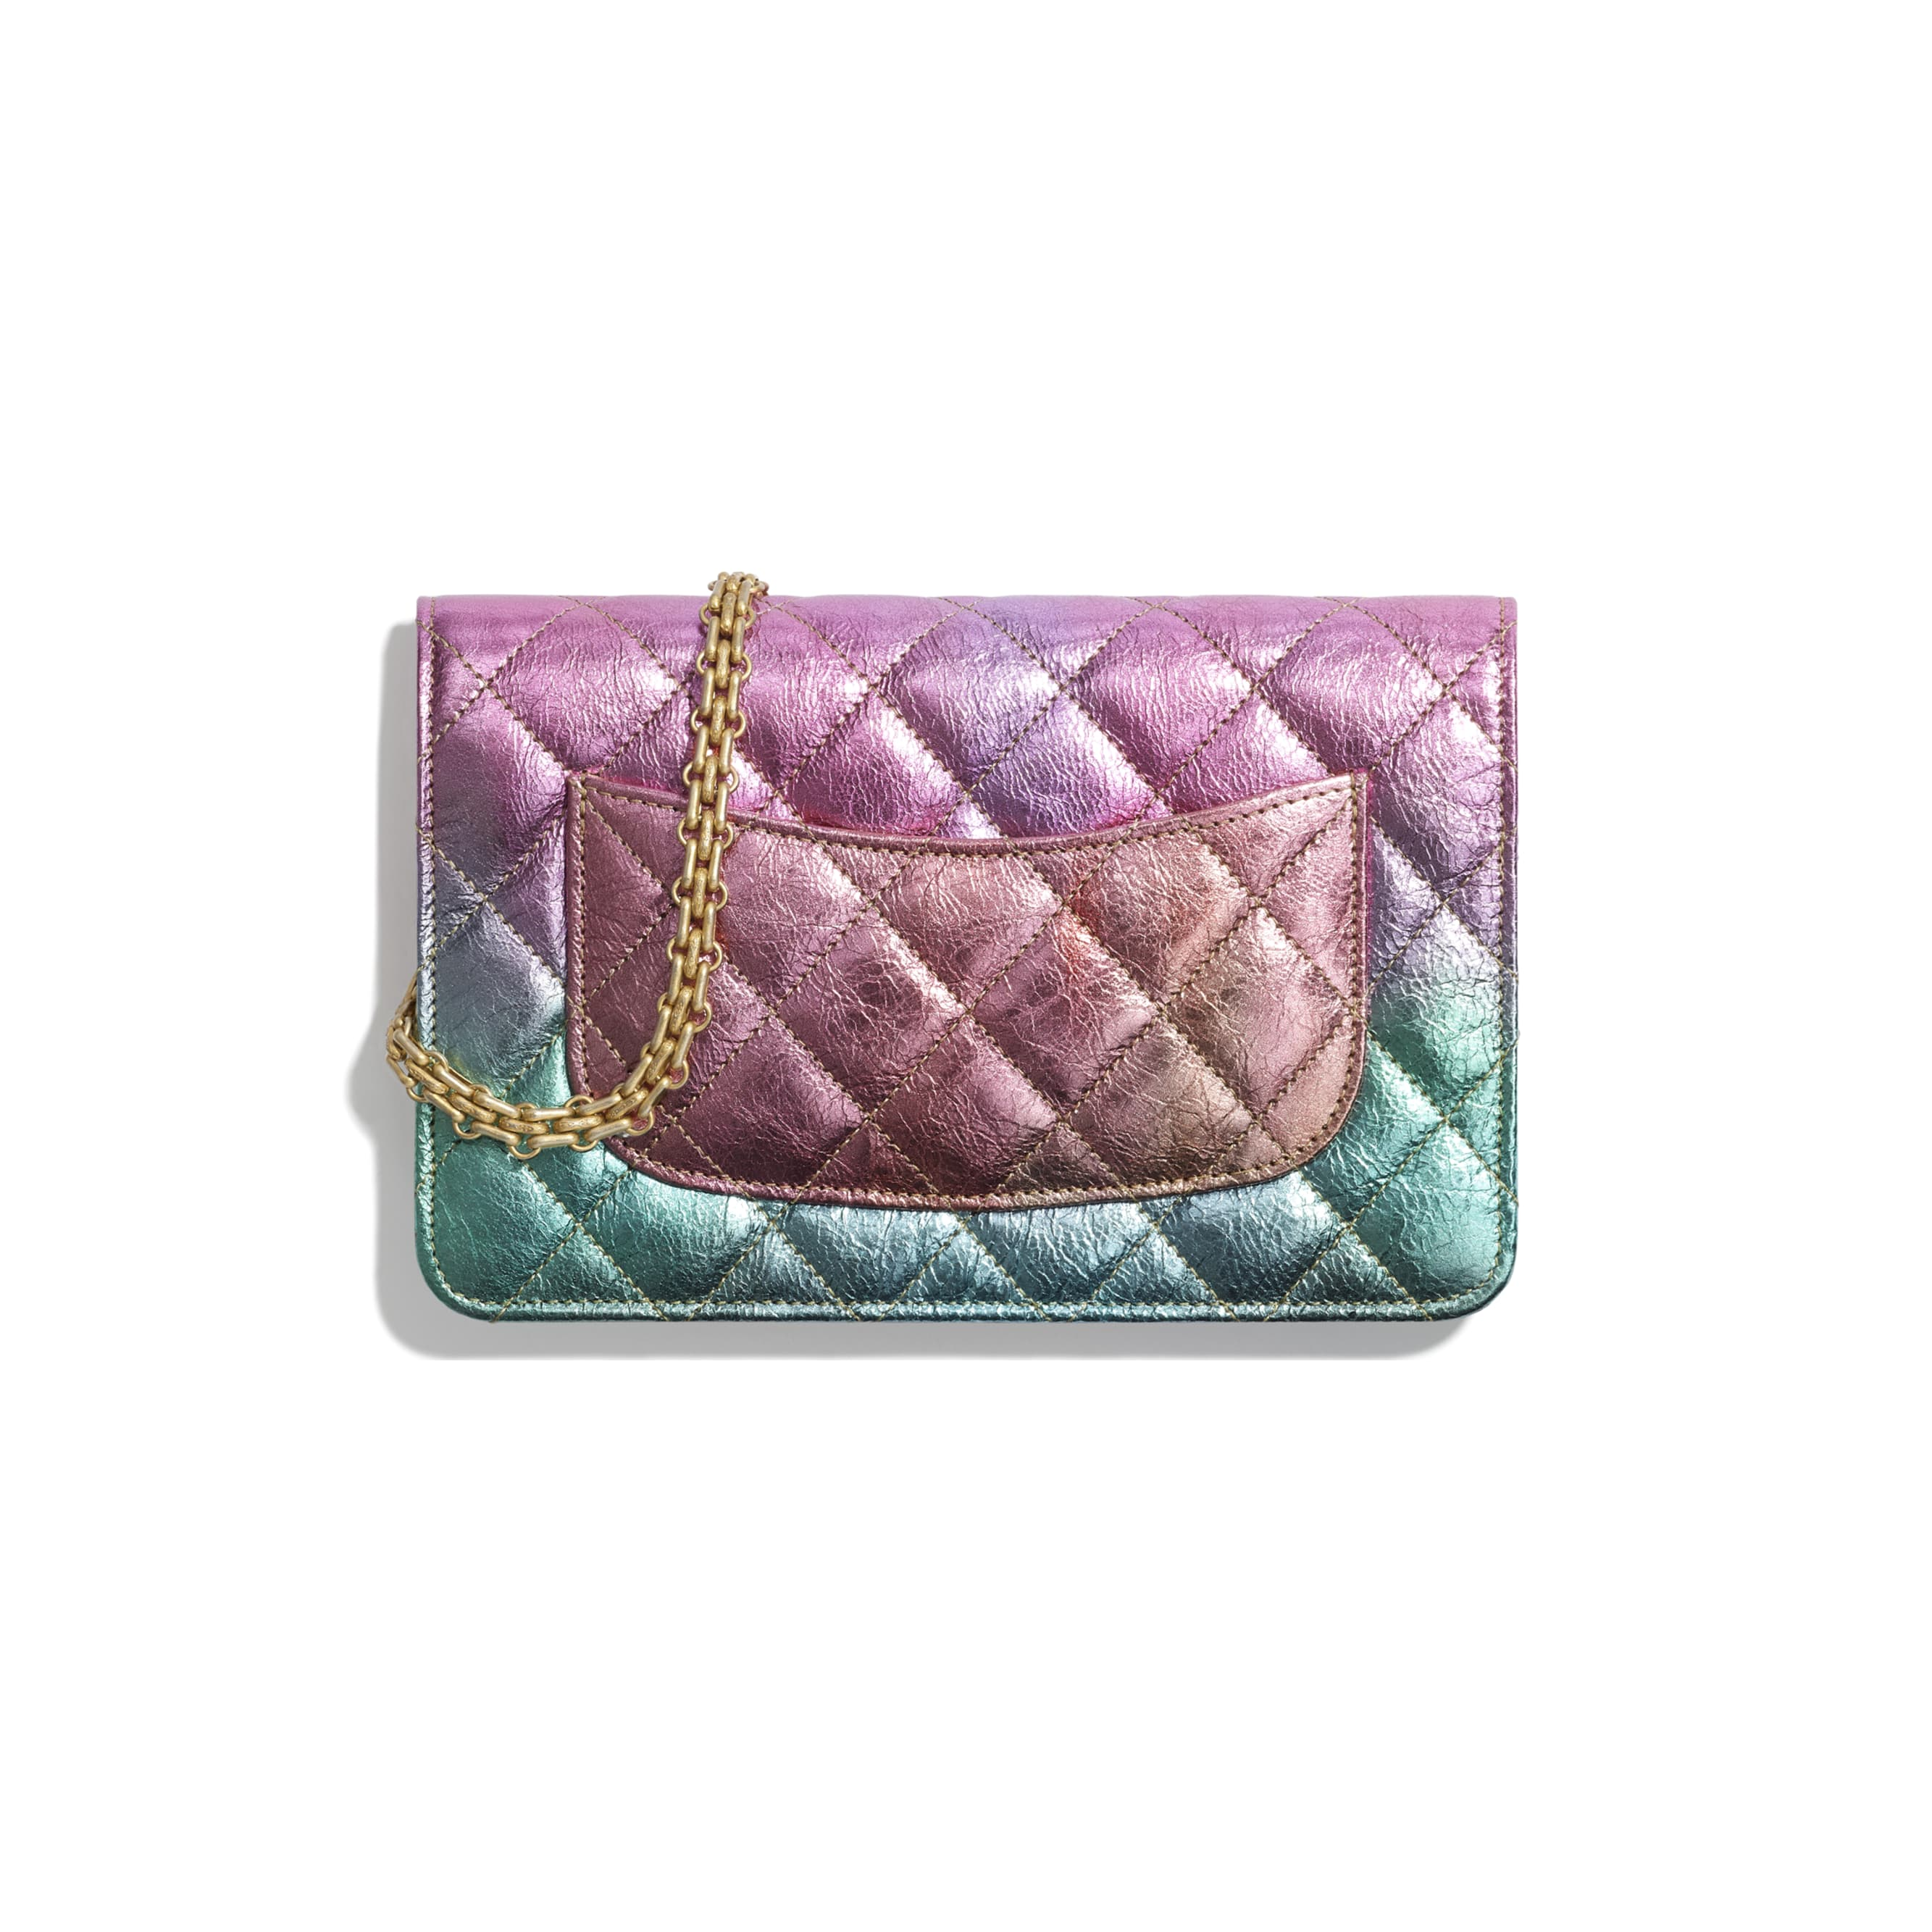 2.55 Wallet On Chain - Multicolour - Metallic Goatskin & Gold-Tone Metal - CHANEL - Alternative view - see standard sized version